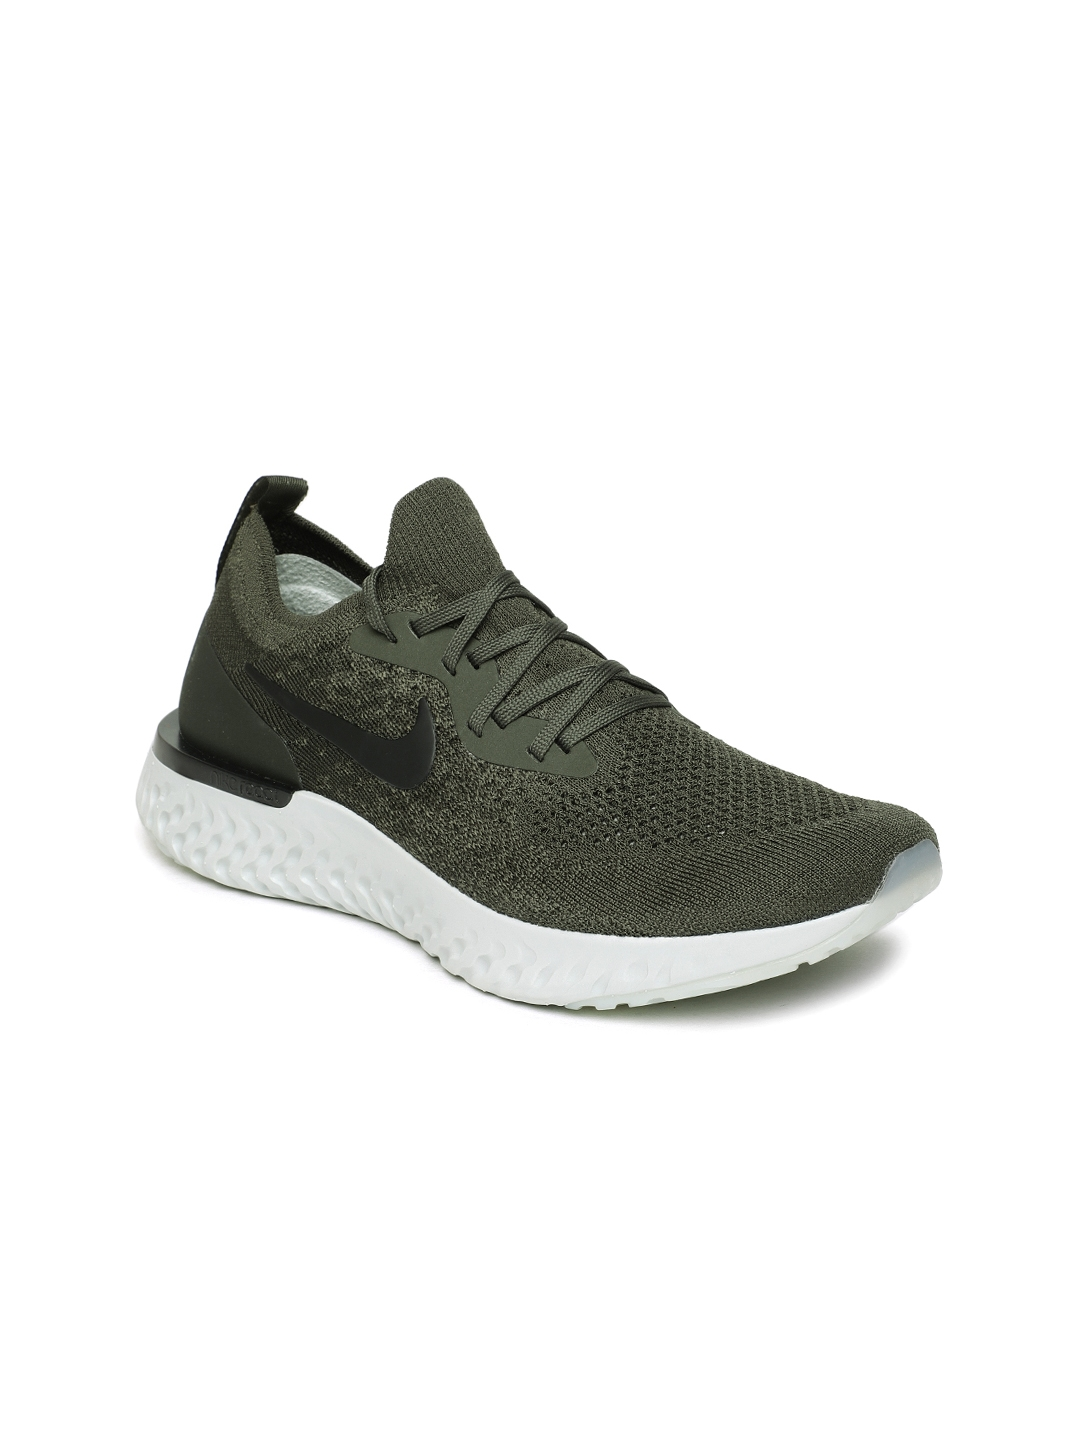 0a26b43dfe6e2 Buy Nike Women Olive Green Epic React Flyknit Running Shoes - Sports ...